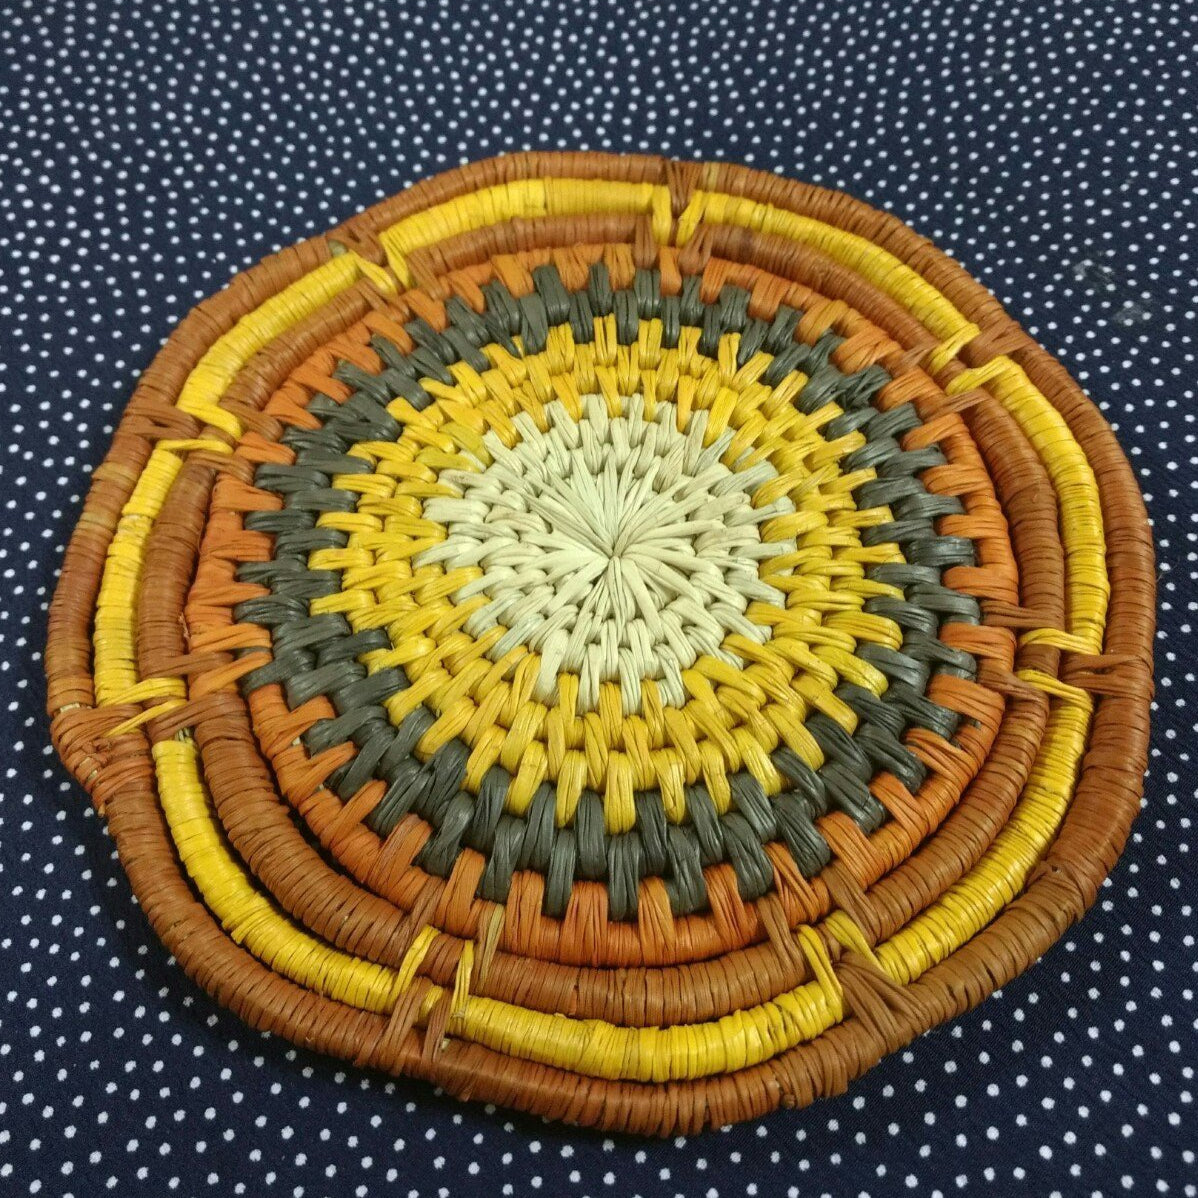 Starwin Social Enterprise, Tiwi Table Mat by Sandy